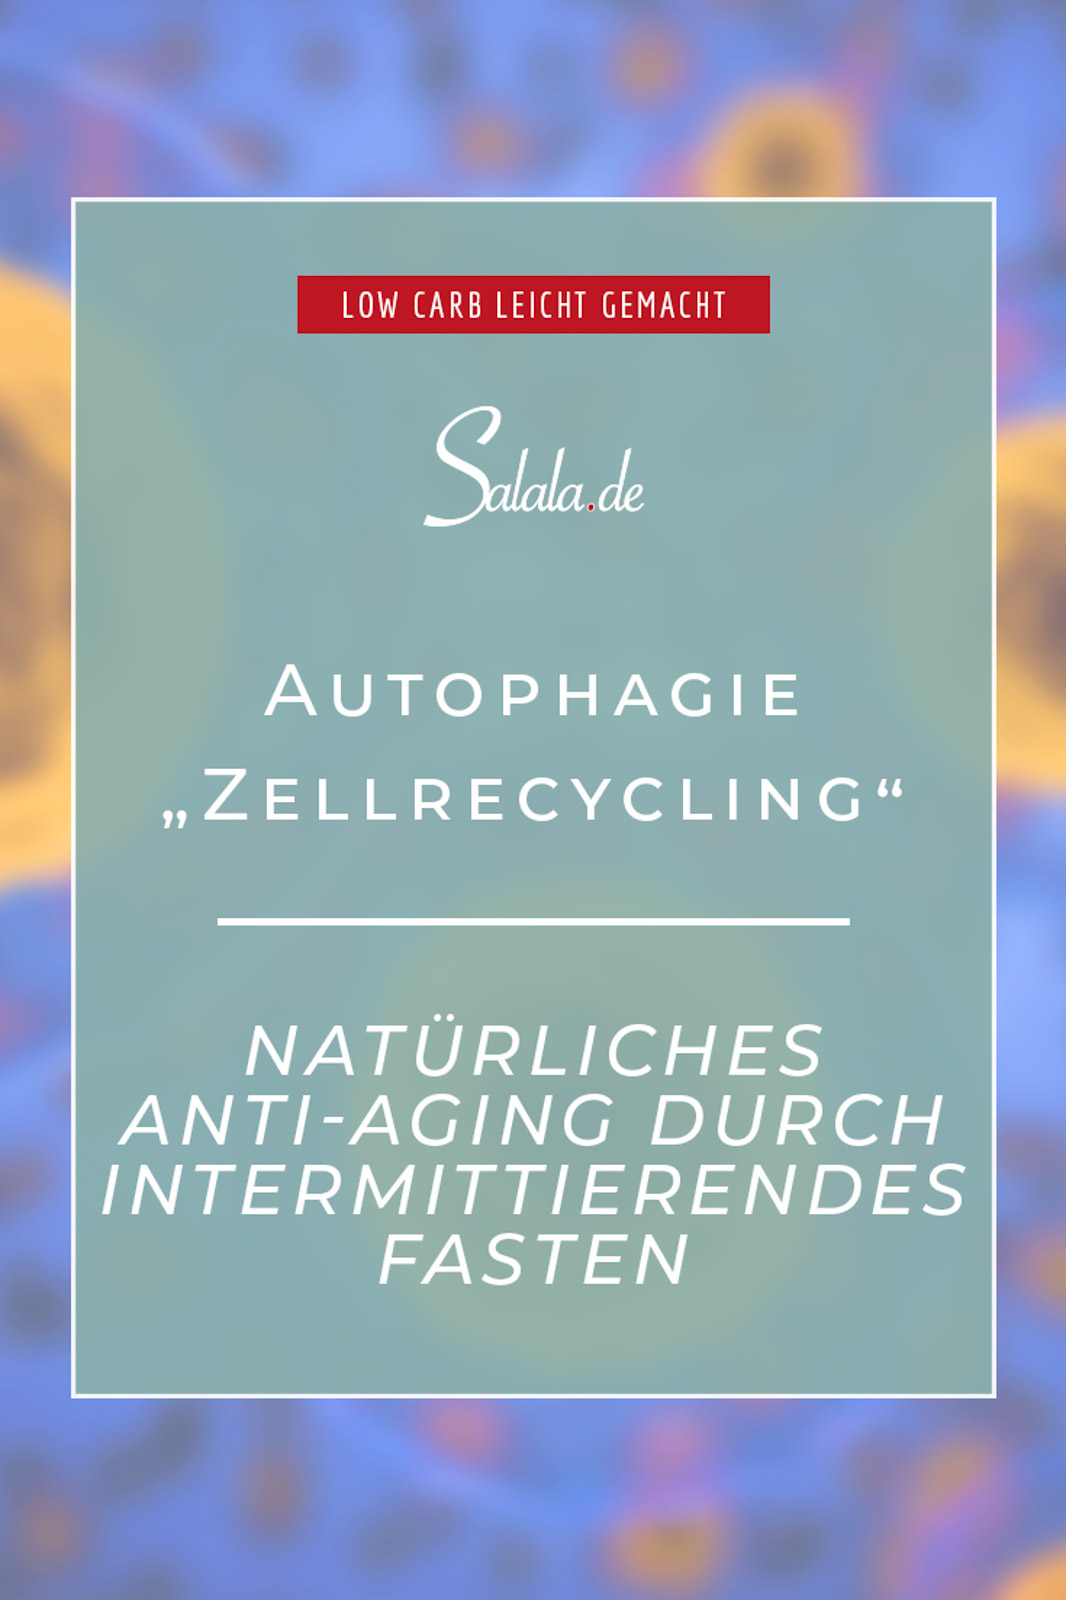 #autophagie #zellrecycling #intermittierendesfasten #intervallfasten